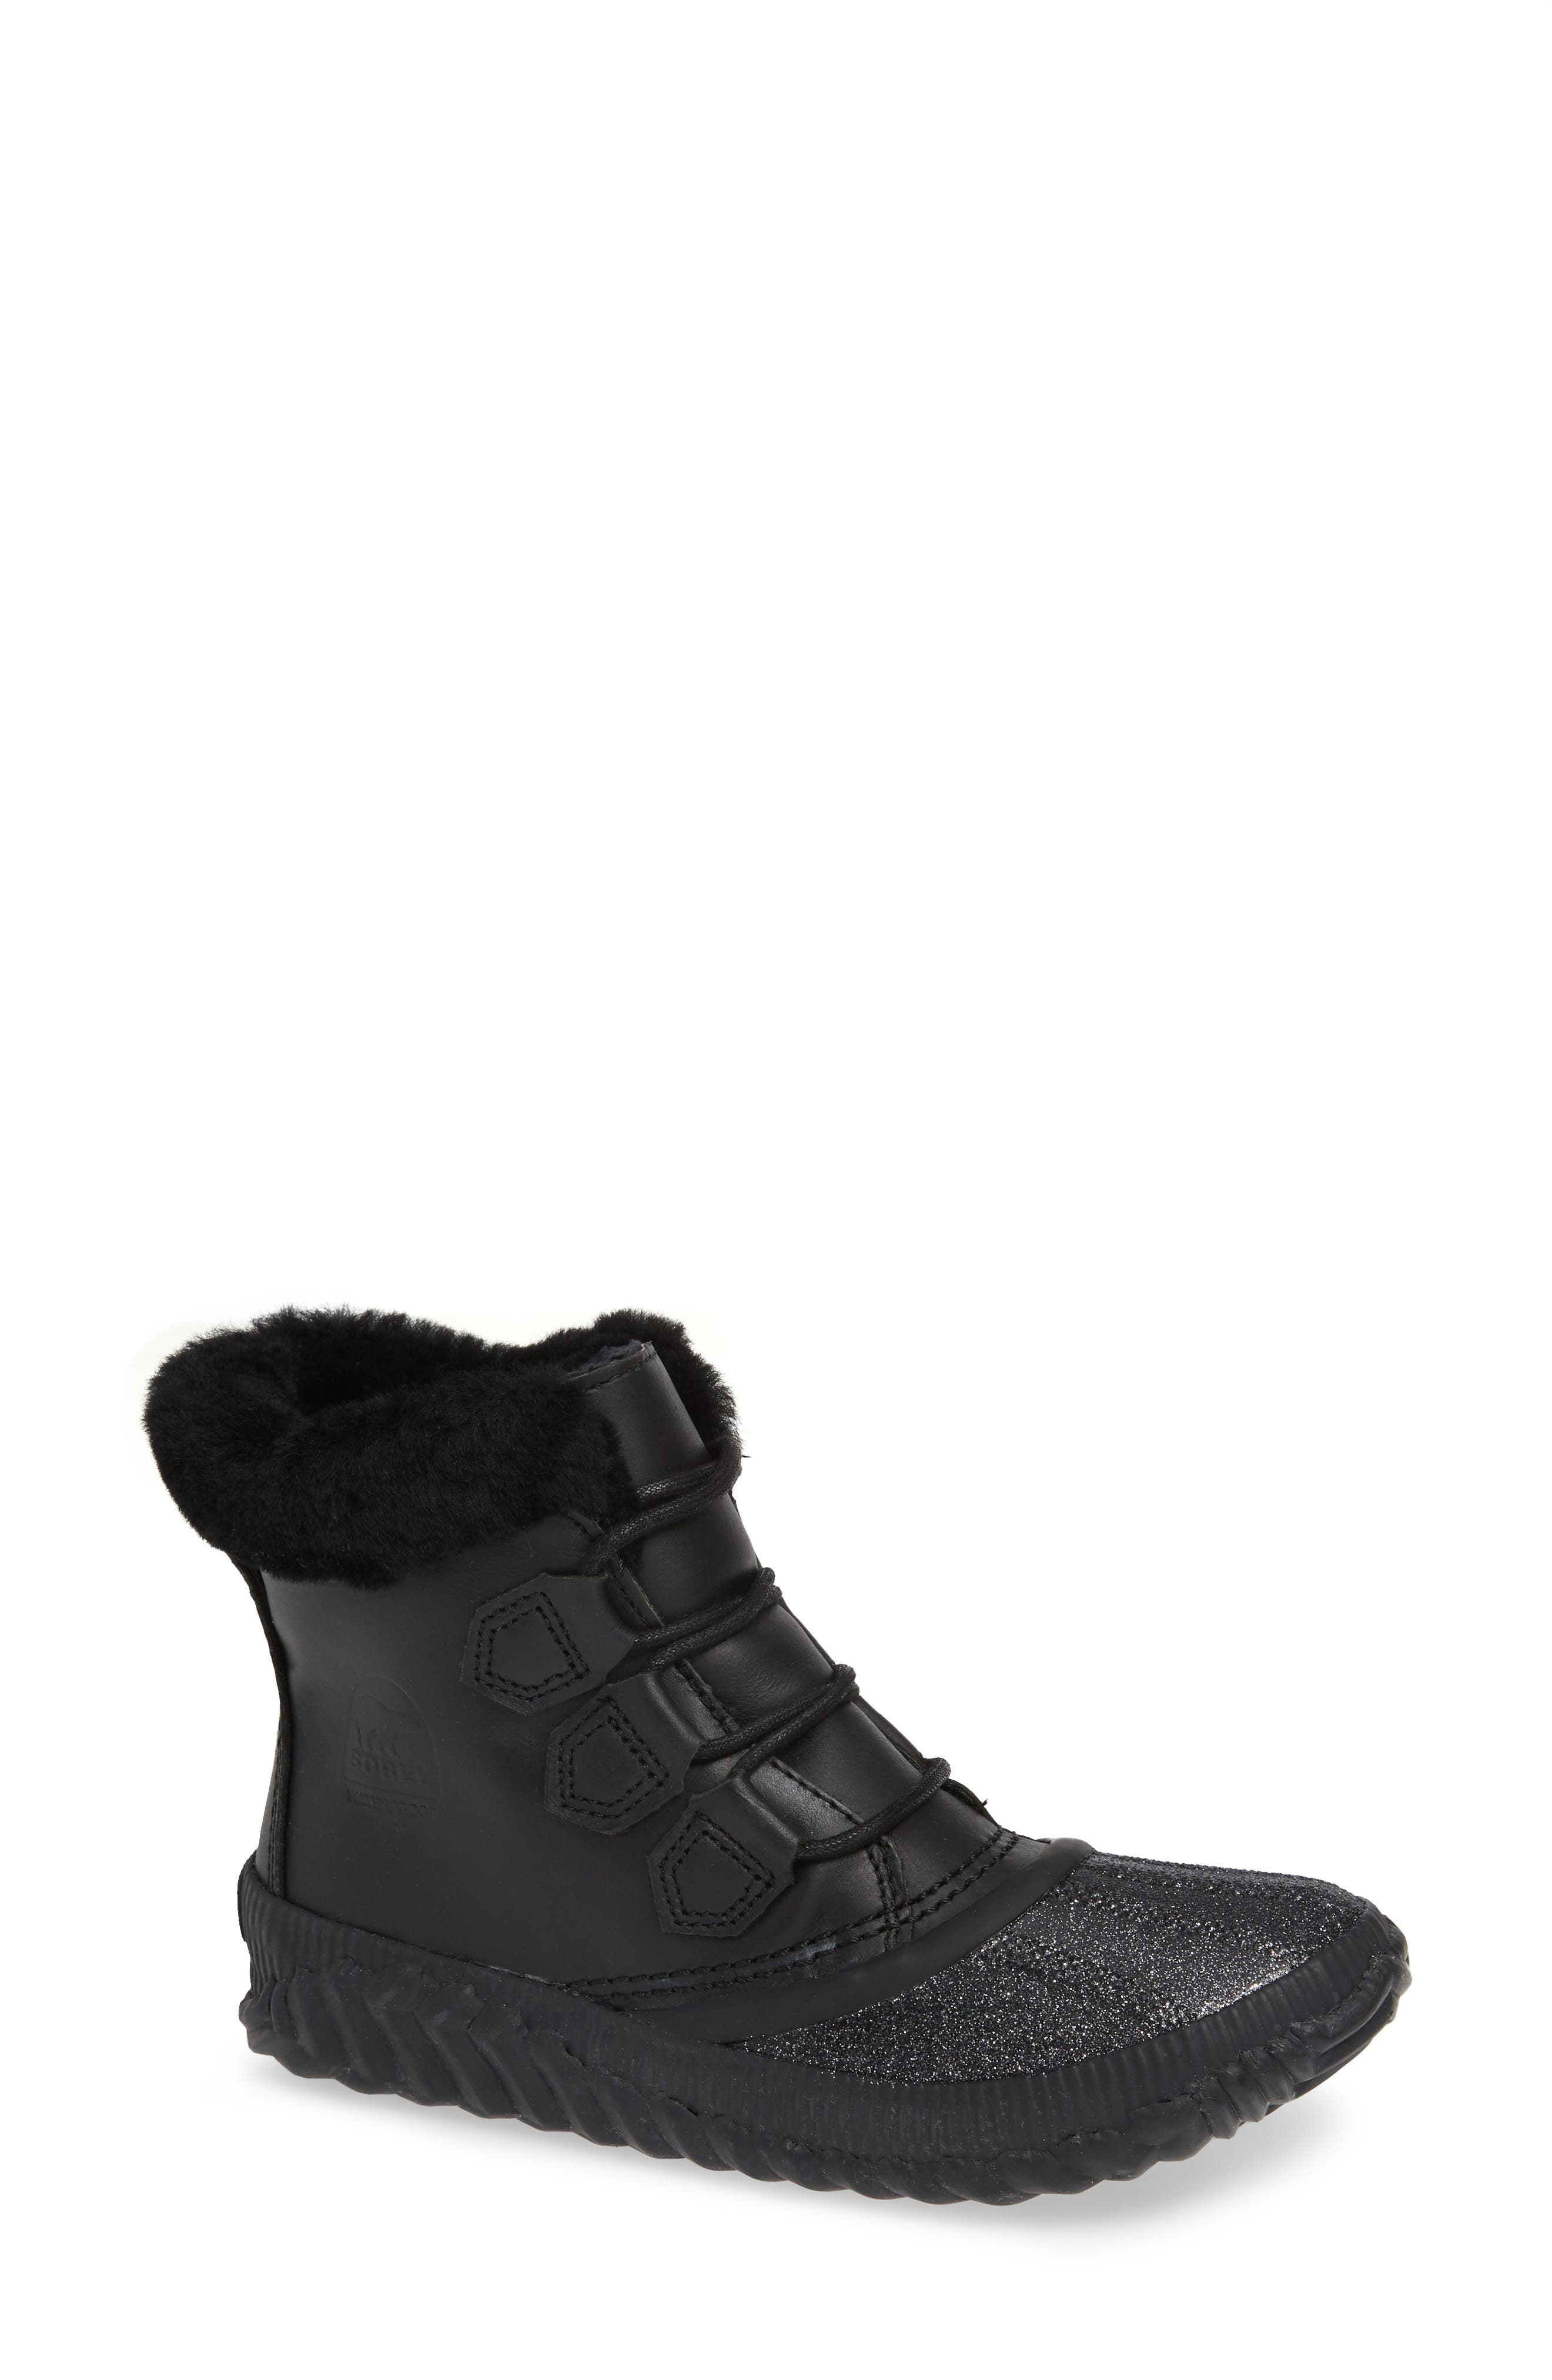 Sorel Out N About Plus Lux Waterproof Boot With Genuine Shearling Trim, Black